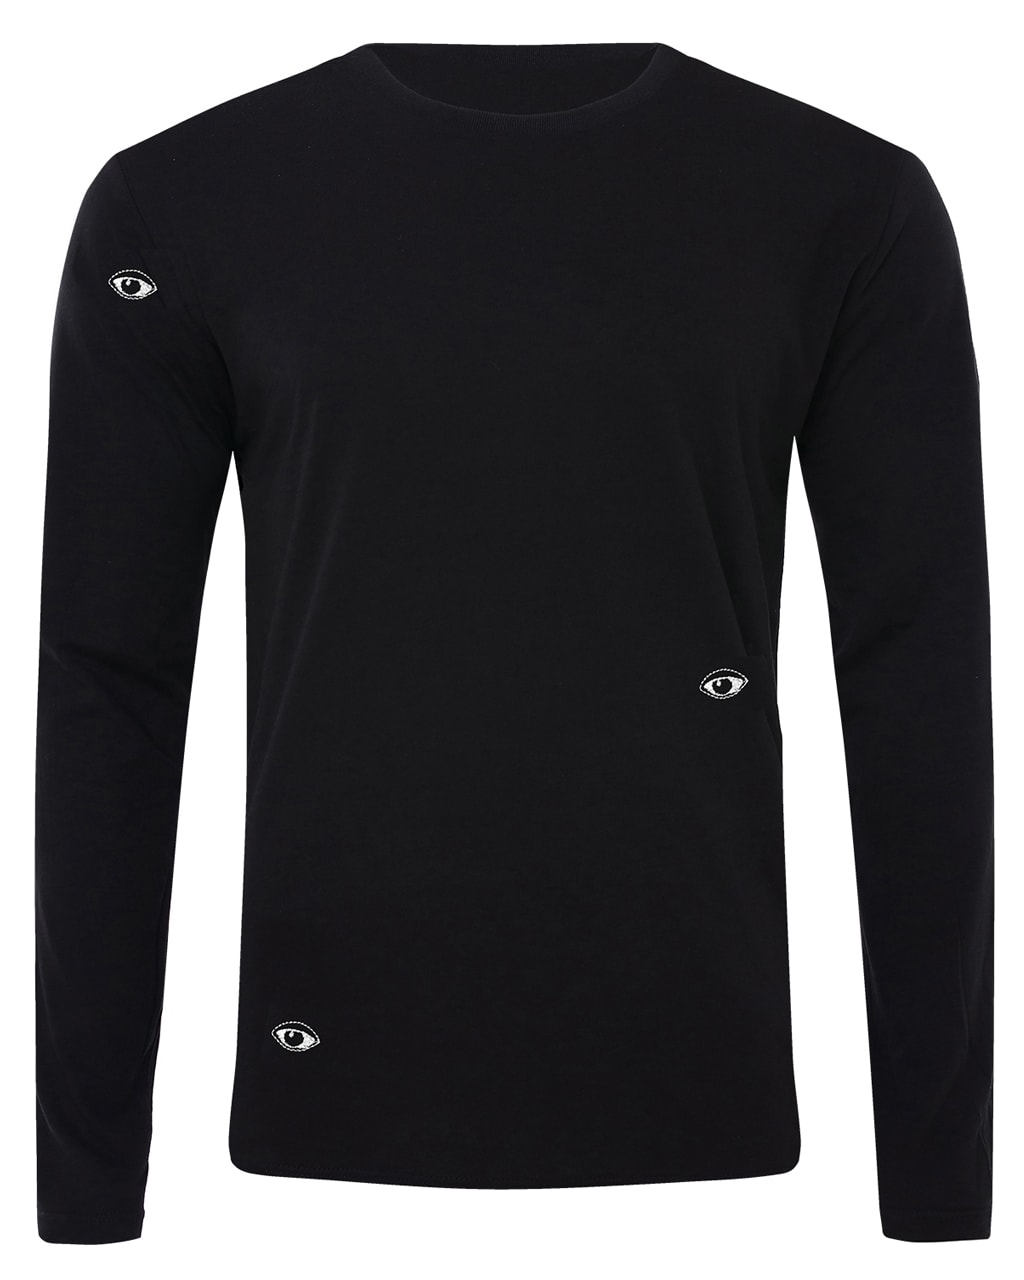 Eyes Embroidered Long Sleeved Top Black